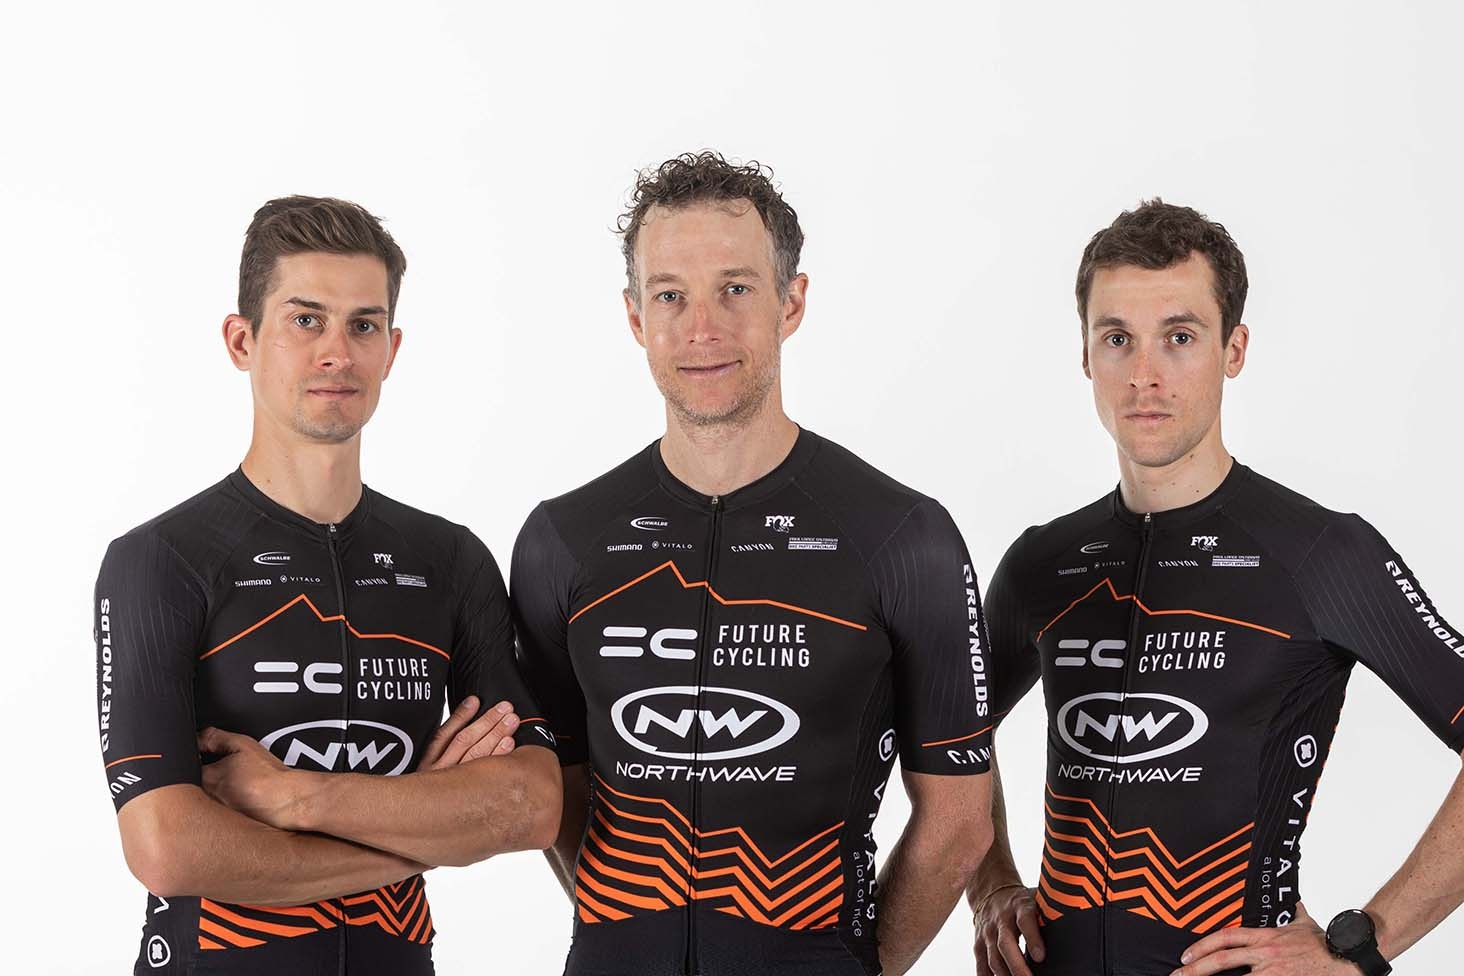 """NORTHWAVE SUPPORTS THE MARATHON MTB TEAM """"FUTURE CYCLING - NORTHWAVE"""""""